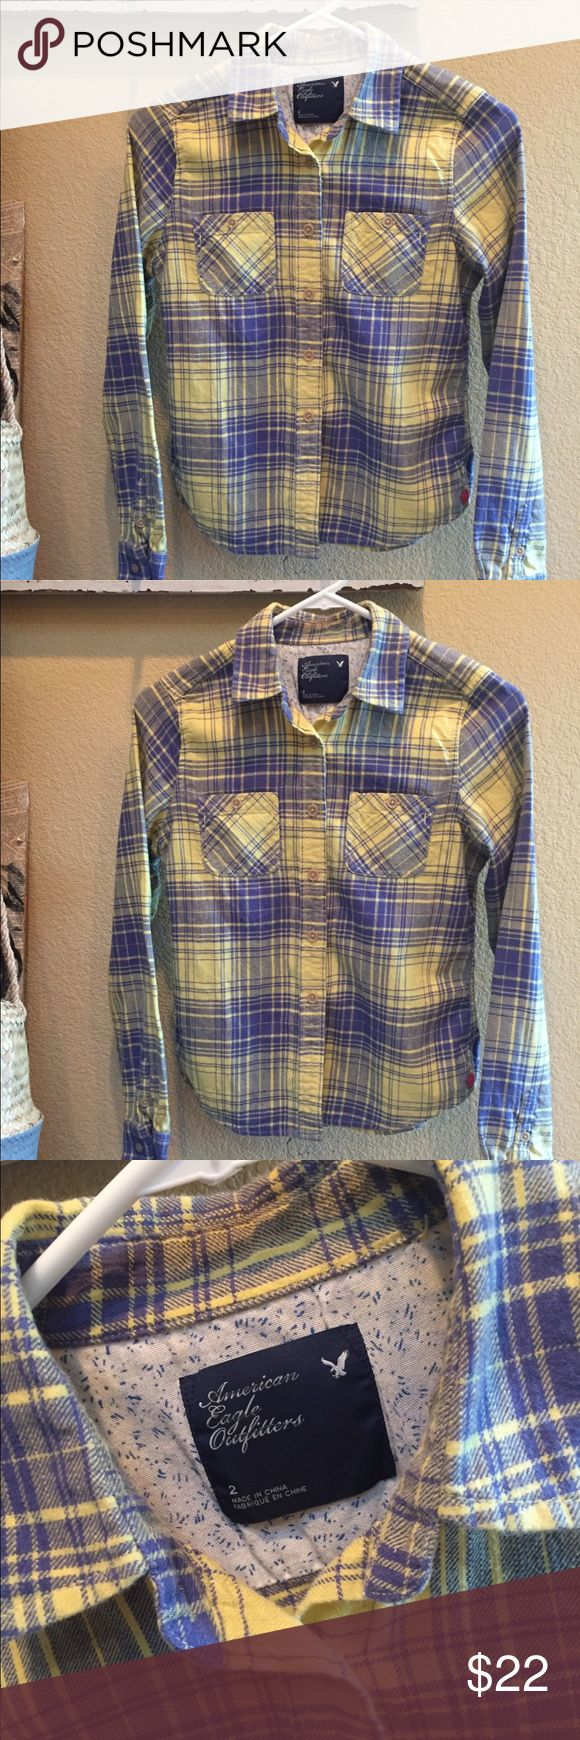 American Eagle Girls Flannel So soft. Size 2 American Eagle flannel in lemon yellow and periwinkle blue. American Eagle Outfitters Shirts & Tops Button Down Shirts